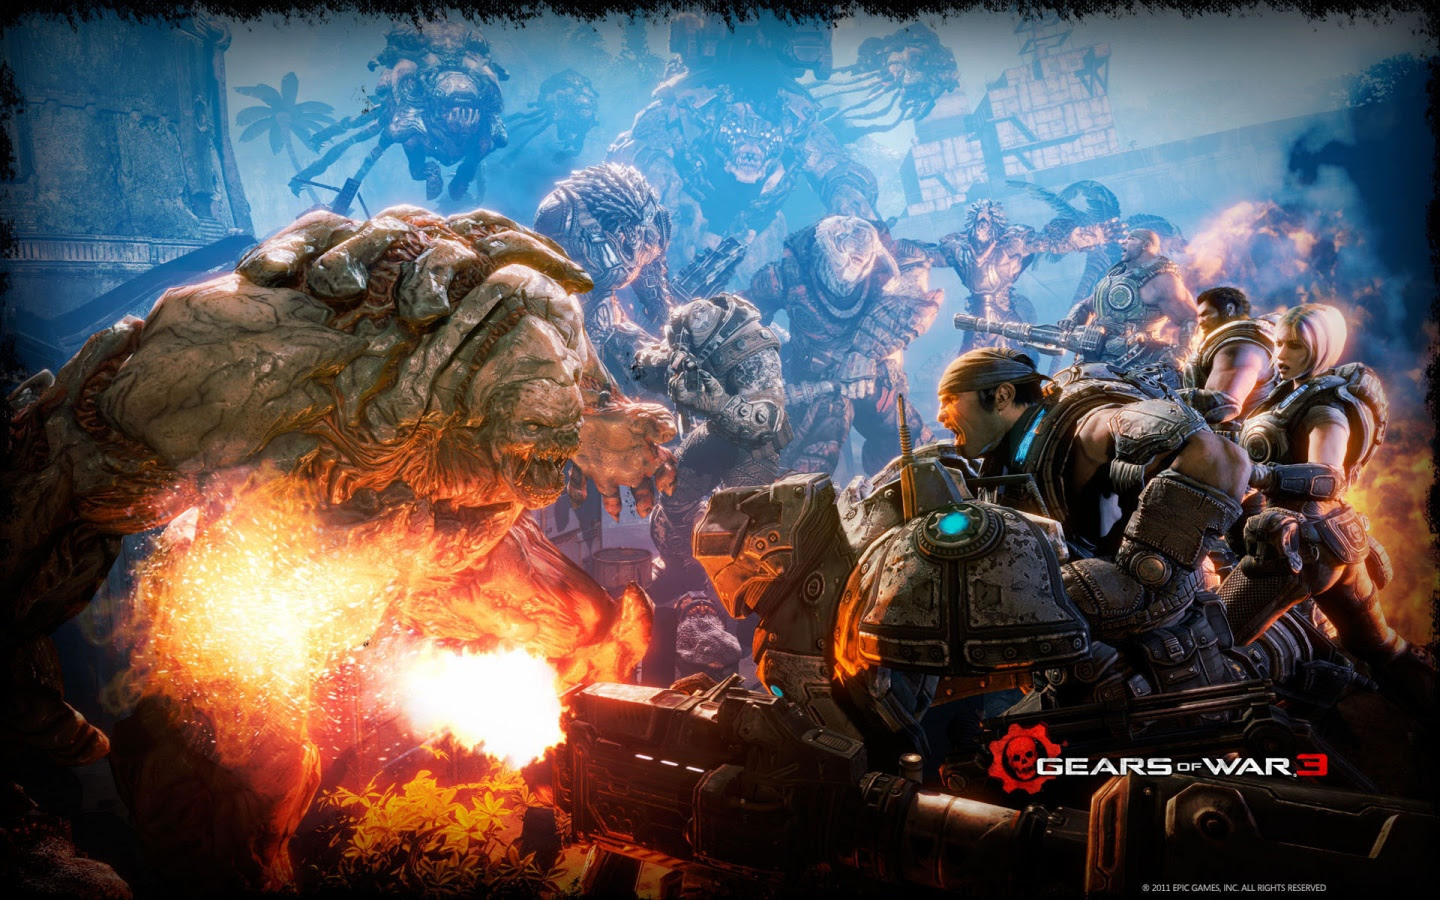 Gears Of War 3 Battle Wallpapers In Jpg Format For Free Download